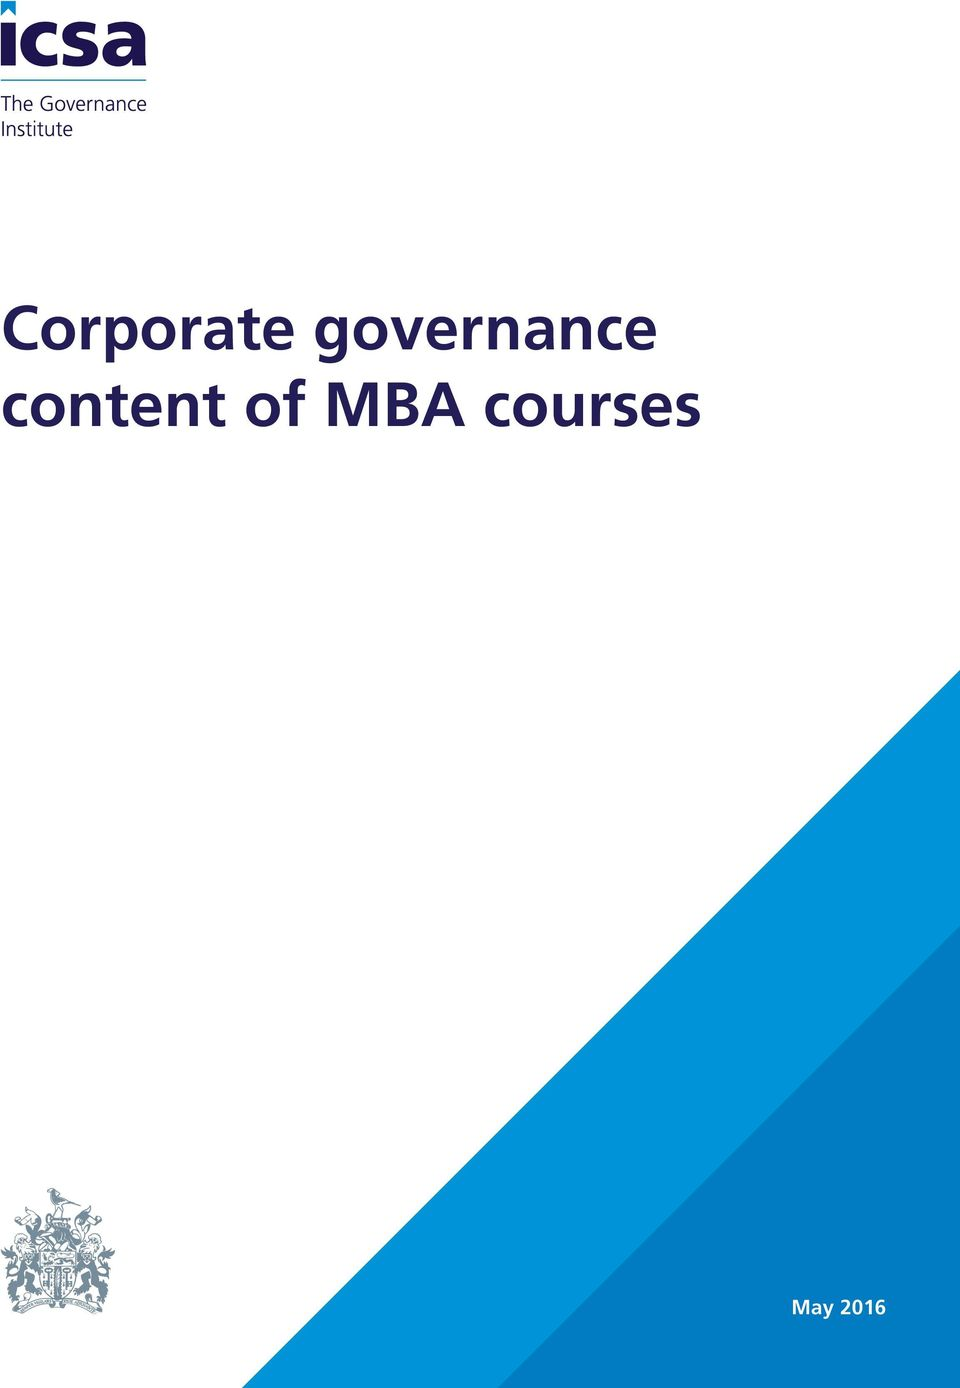 mba dissertations on corporate governance What it takes to complete a brilliant mba dissertation first of all, you need to pick a topic check our list of corporate government topic suggestions a dissertation topic related to corporate governance is a fabulous type of project to work on that can be done with a great deal of detail.